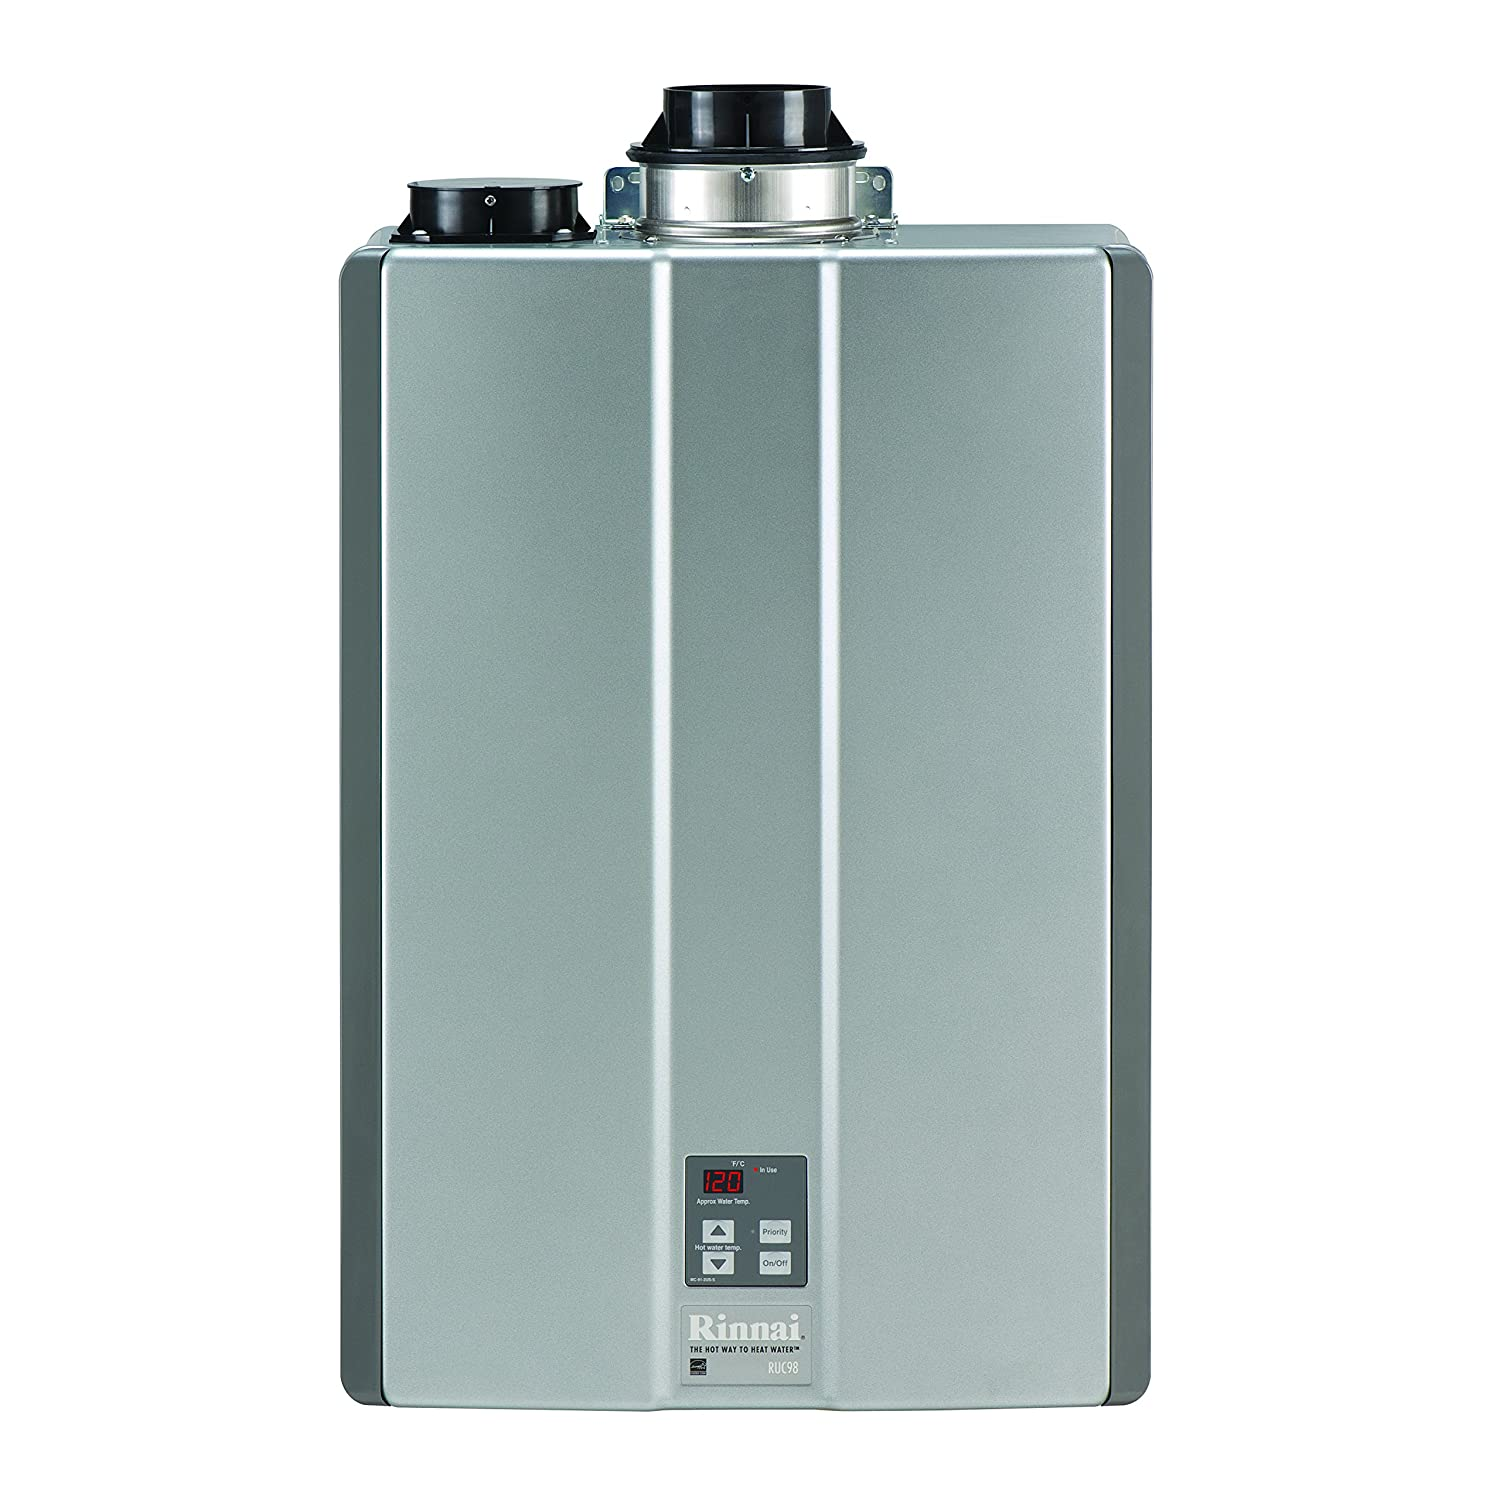 Rinnai RUC98iN Ultra Series Natural Gas Tankless Water Heater ...